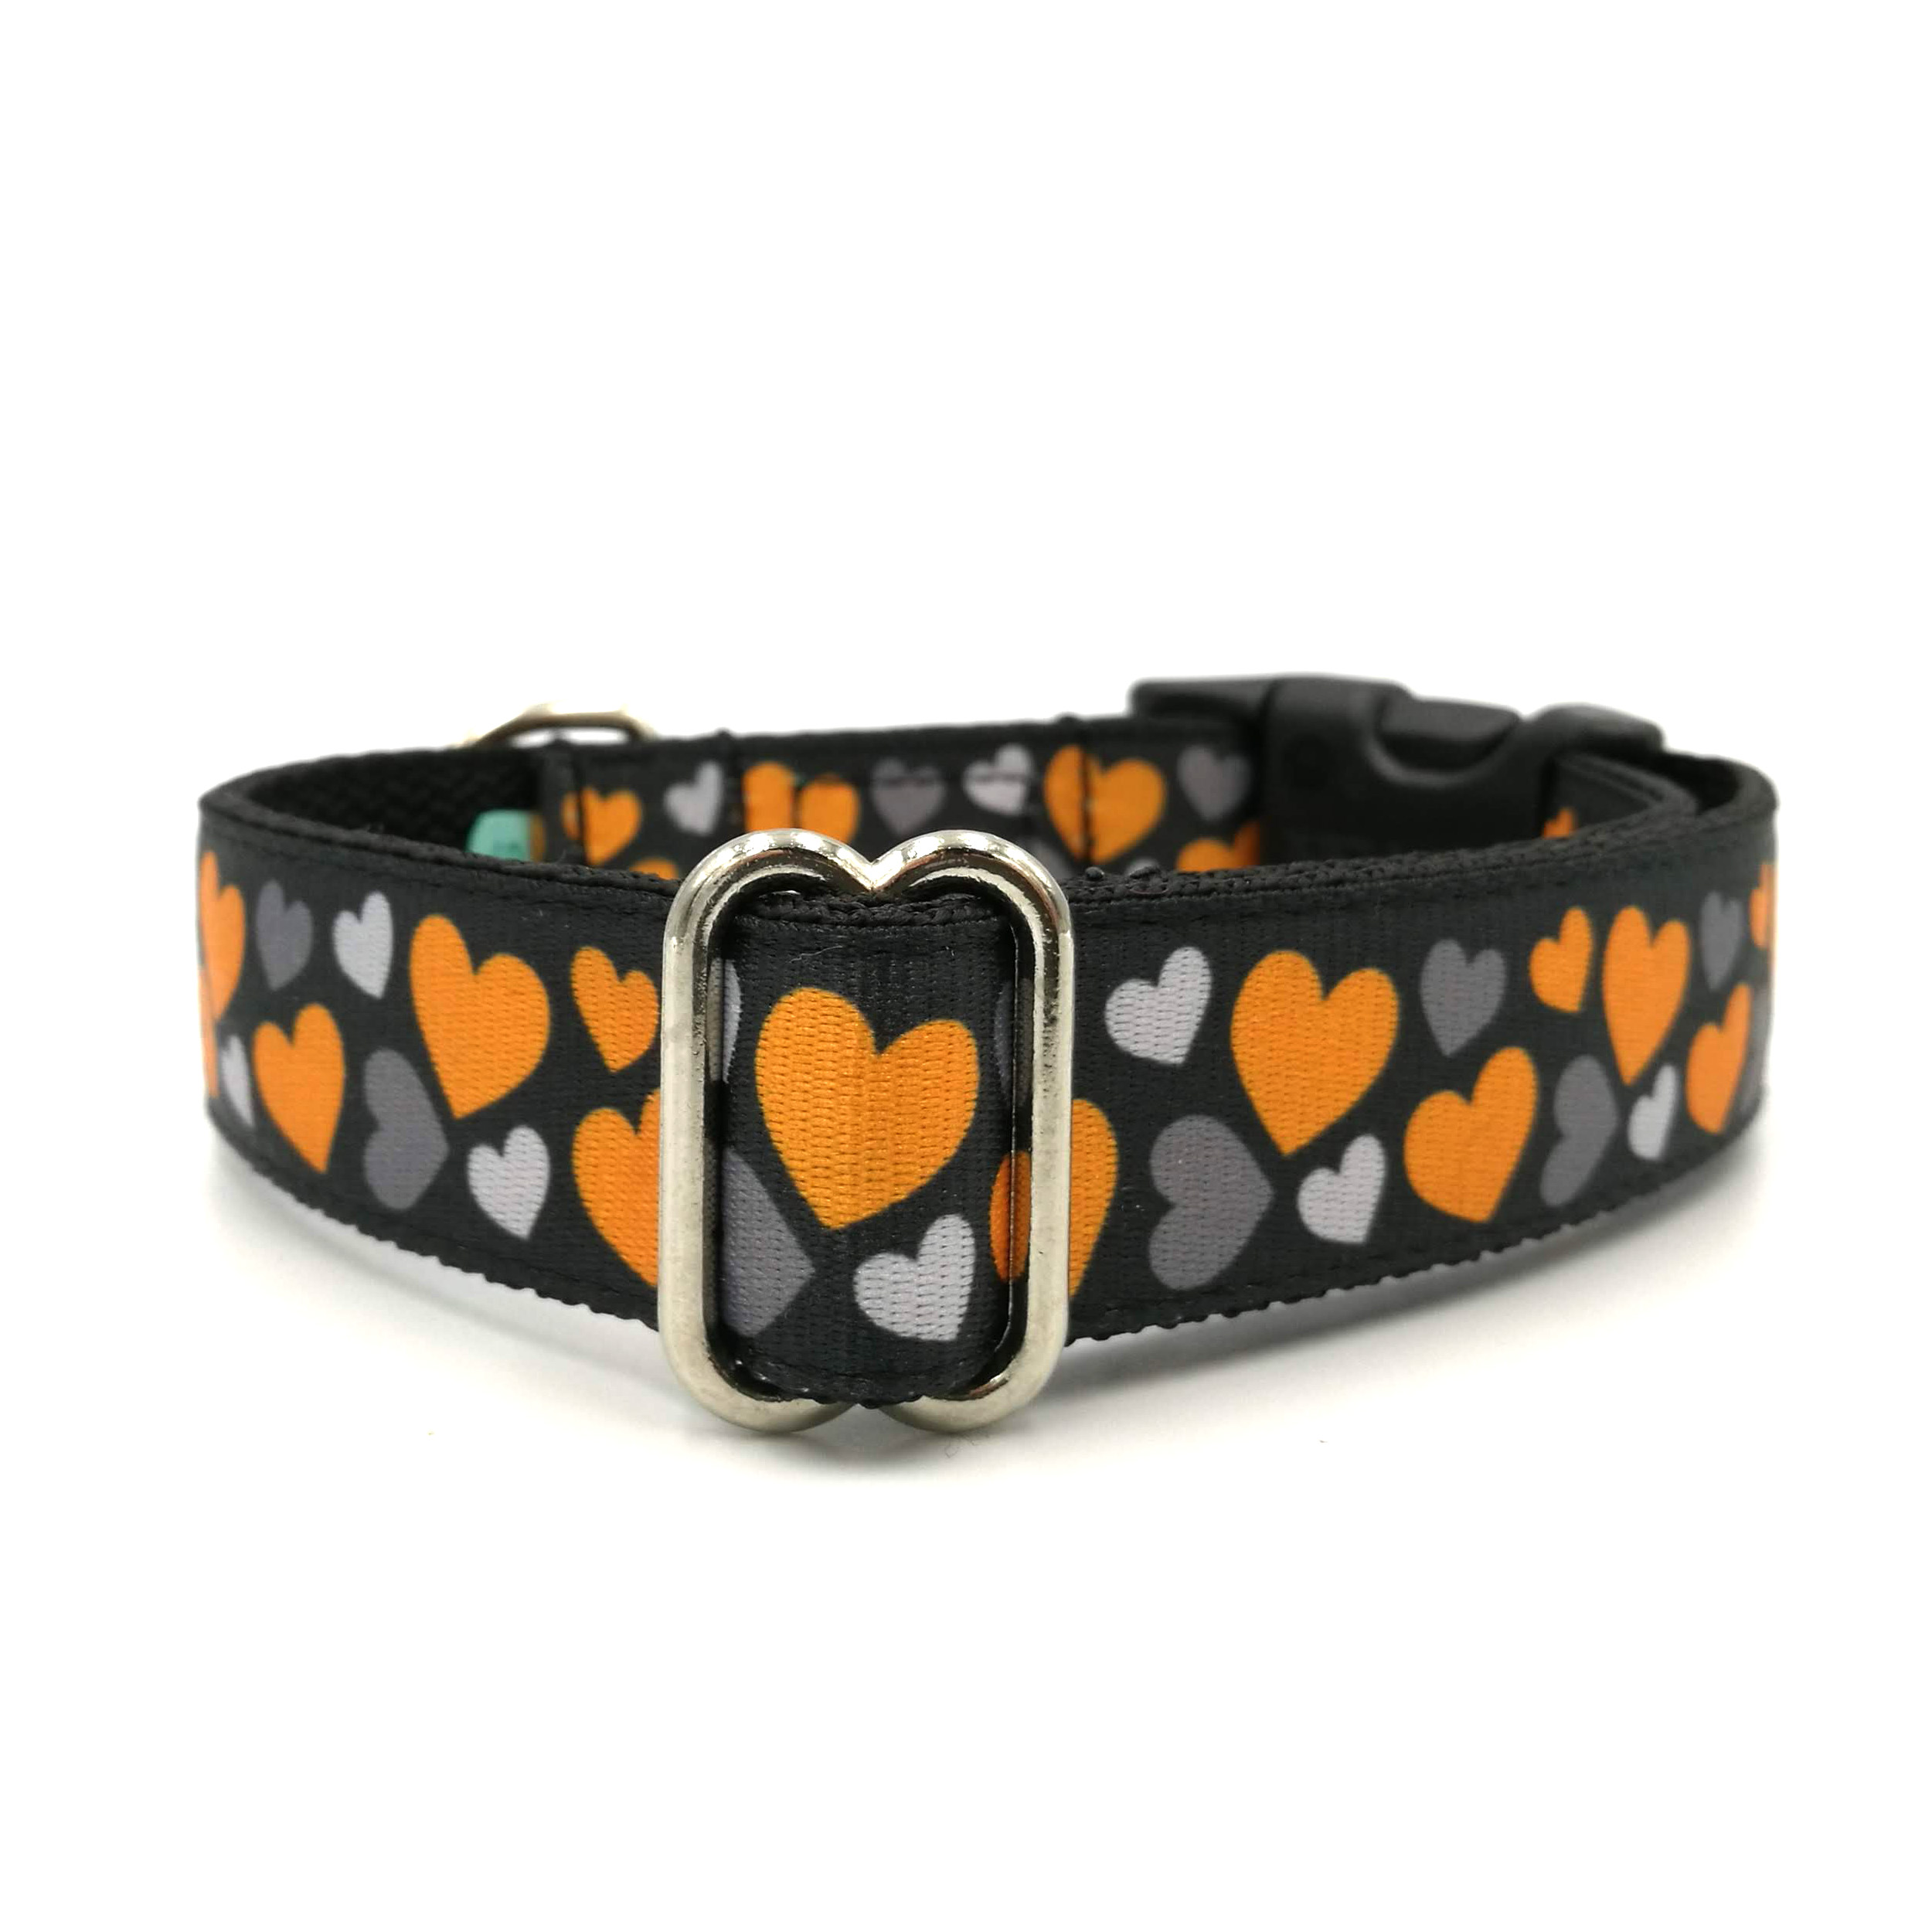 Heart patterned dog collar